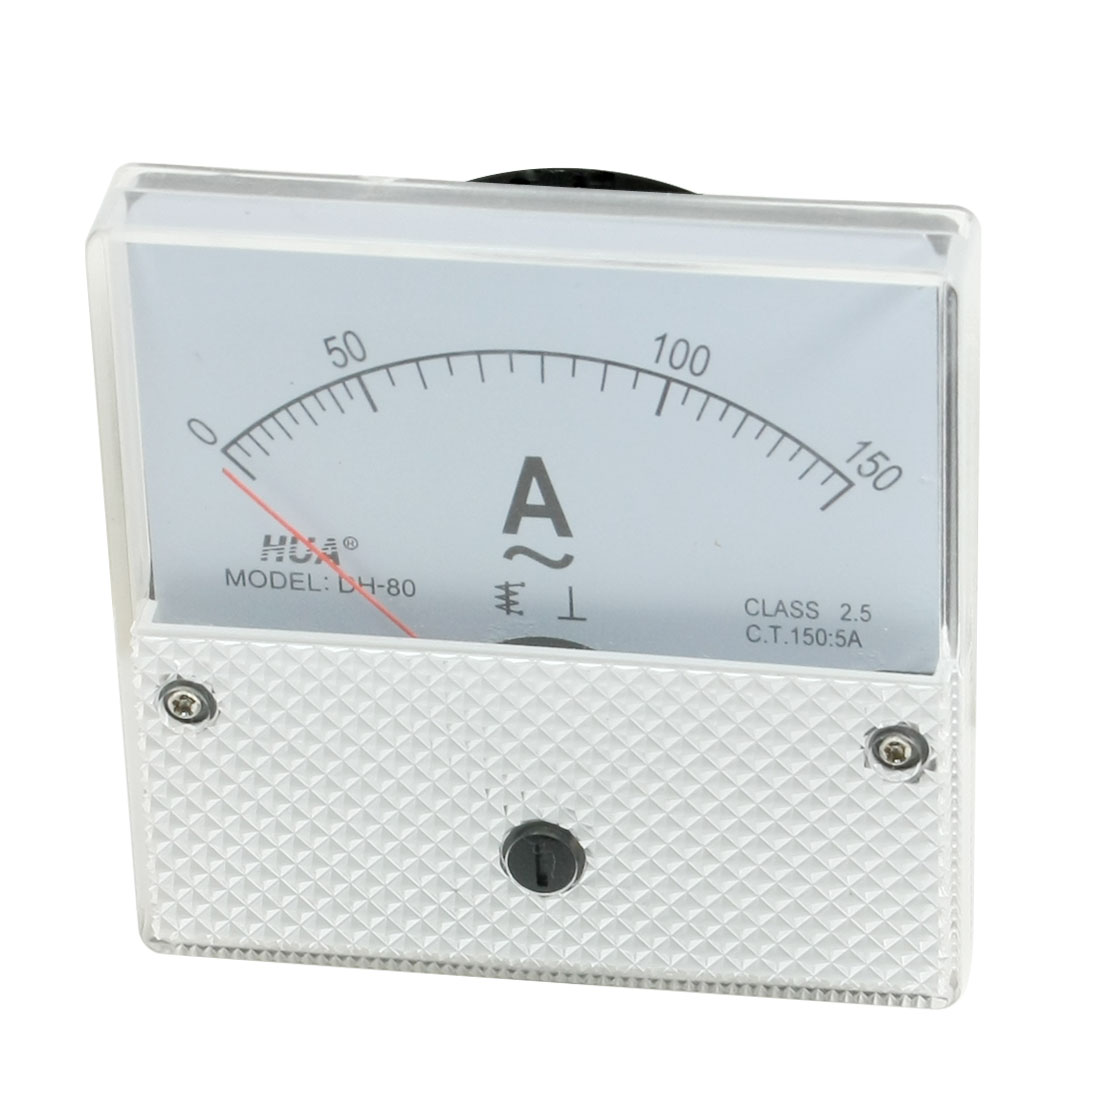 Class 2.5 Accuracy AC0-150A Dial Analog Panel Meter Gauge DH-80